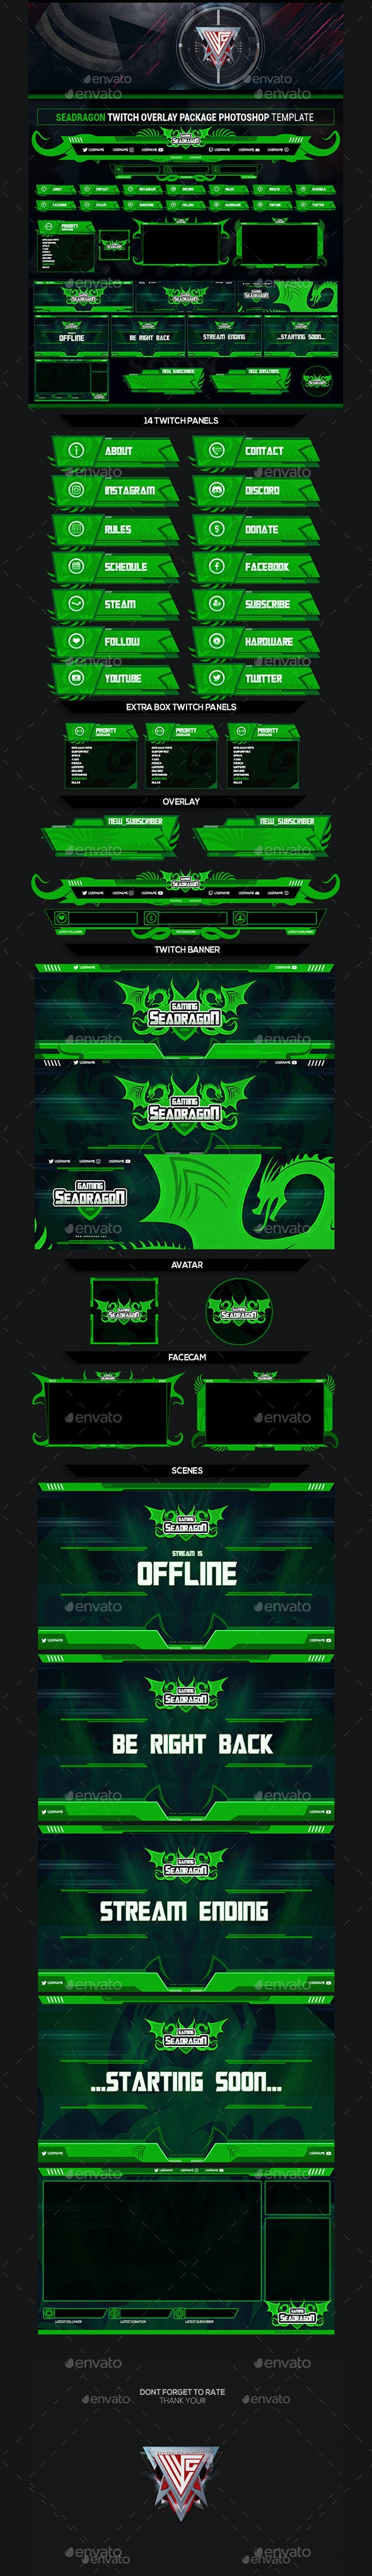 Sea Dragon Twitch Overlay Photoshop Template by MCGRAPHICS